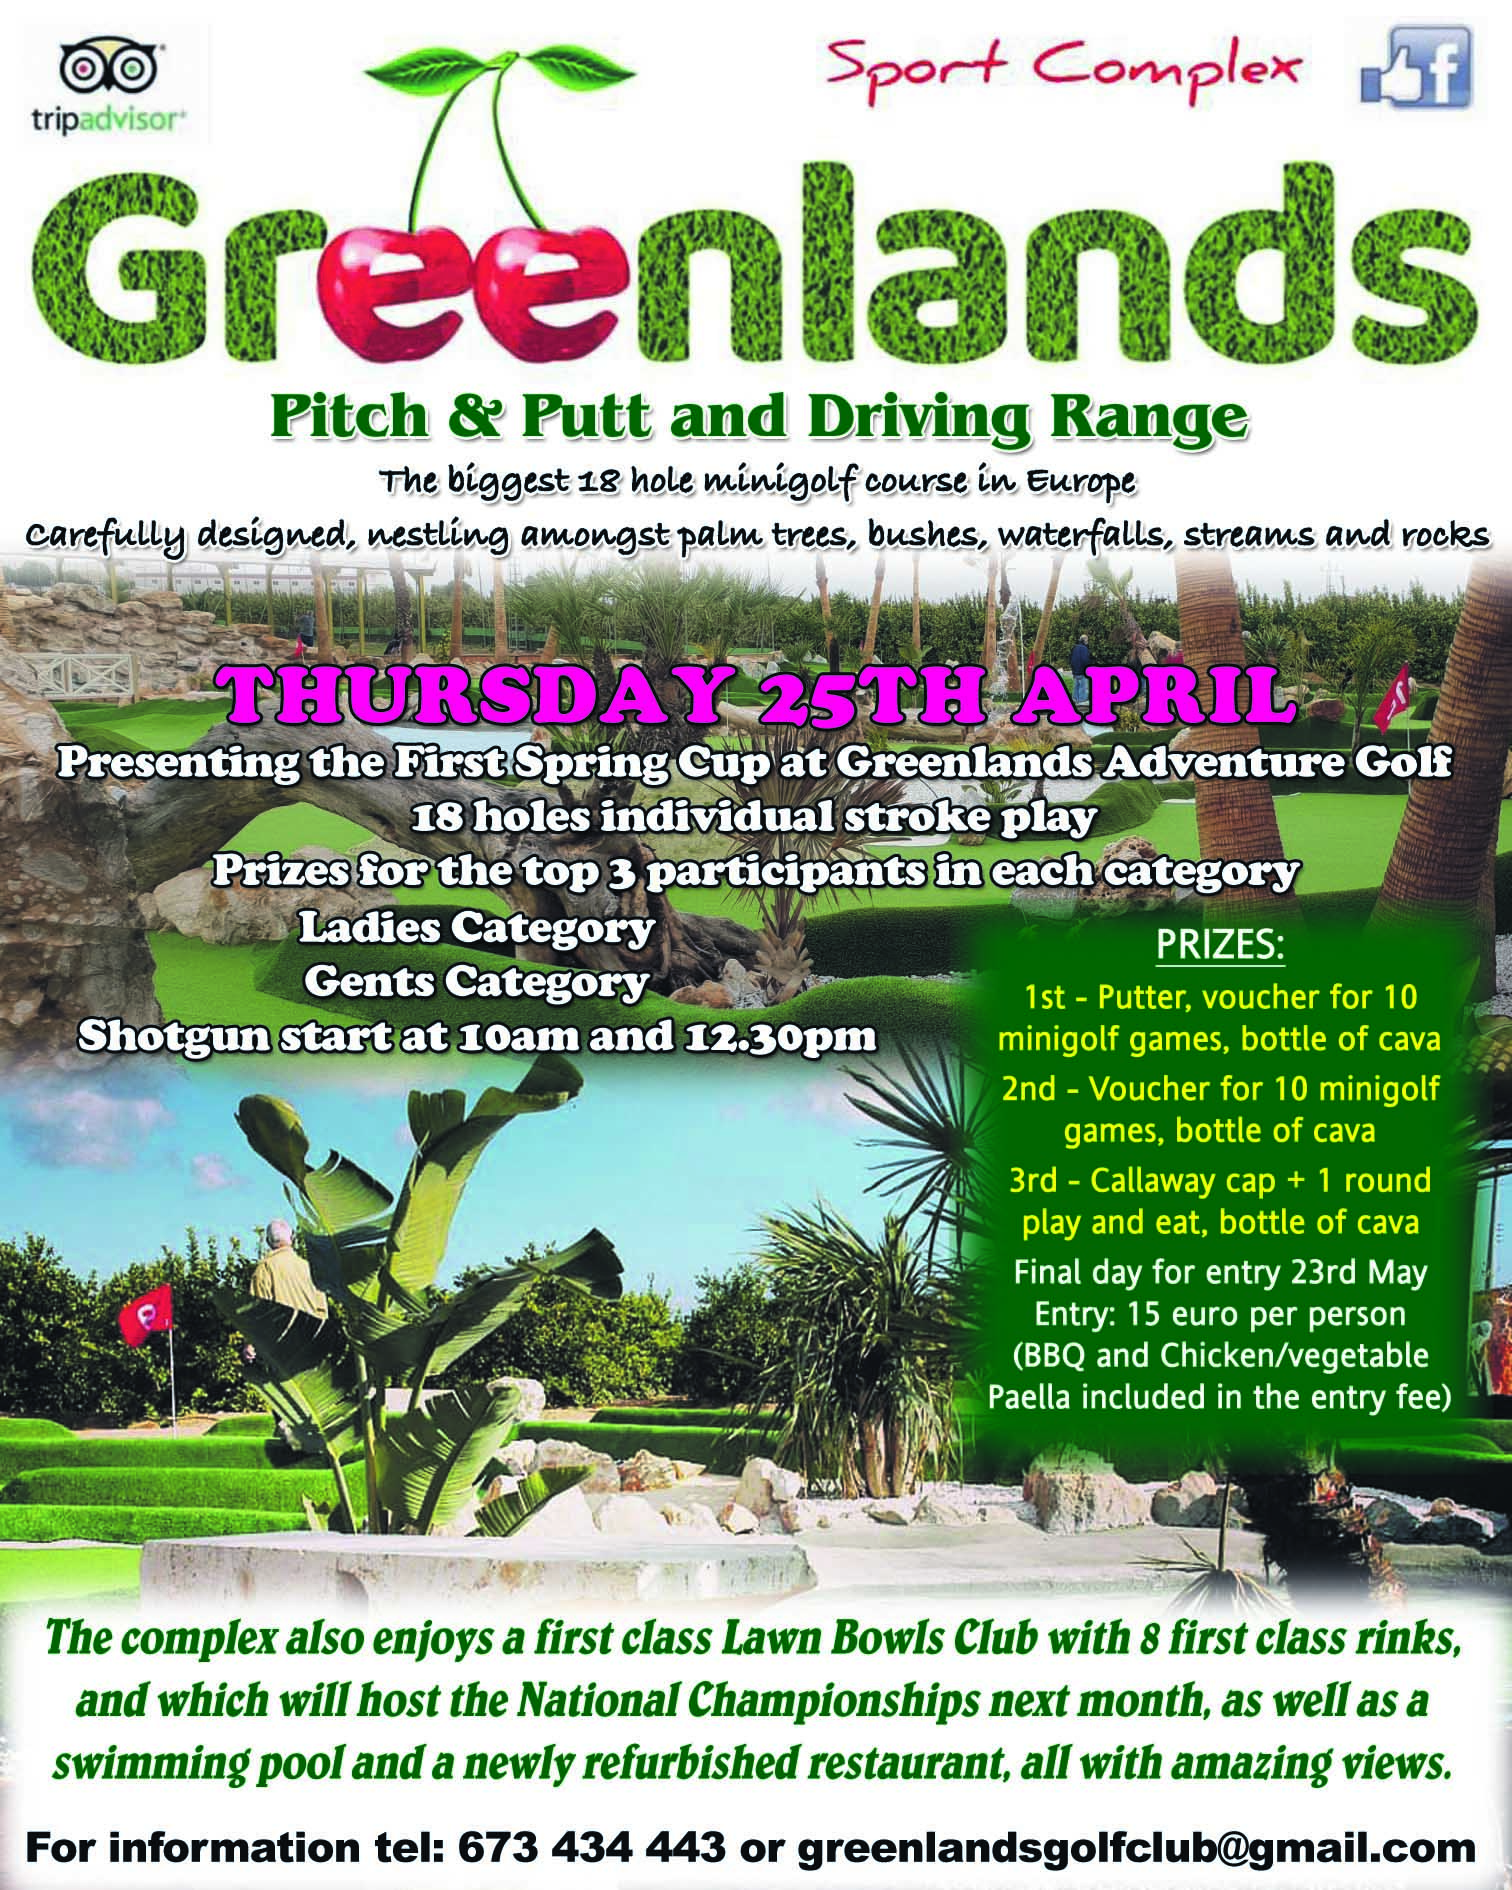 Greenlands 1st Spring Golf Cup